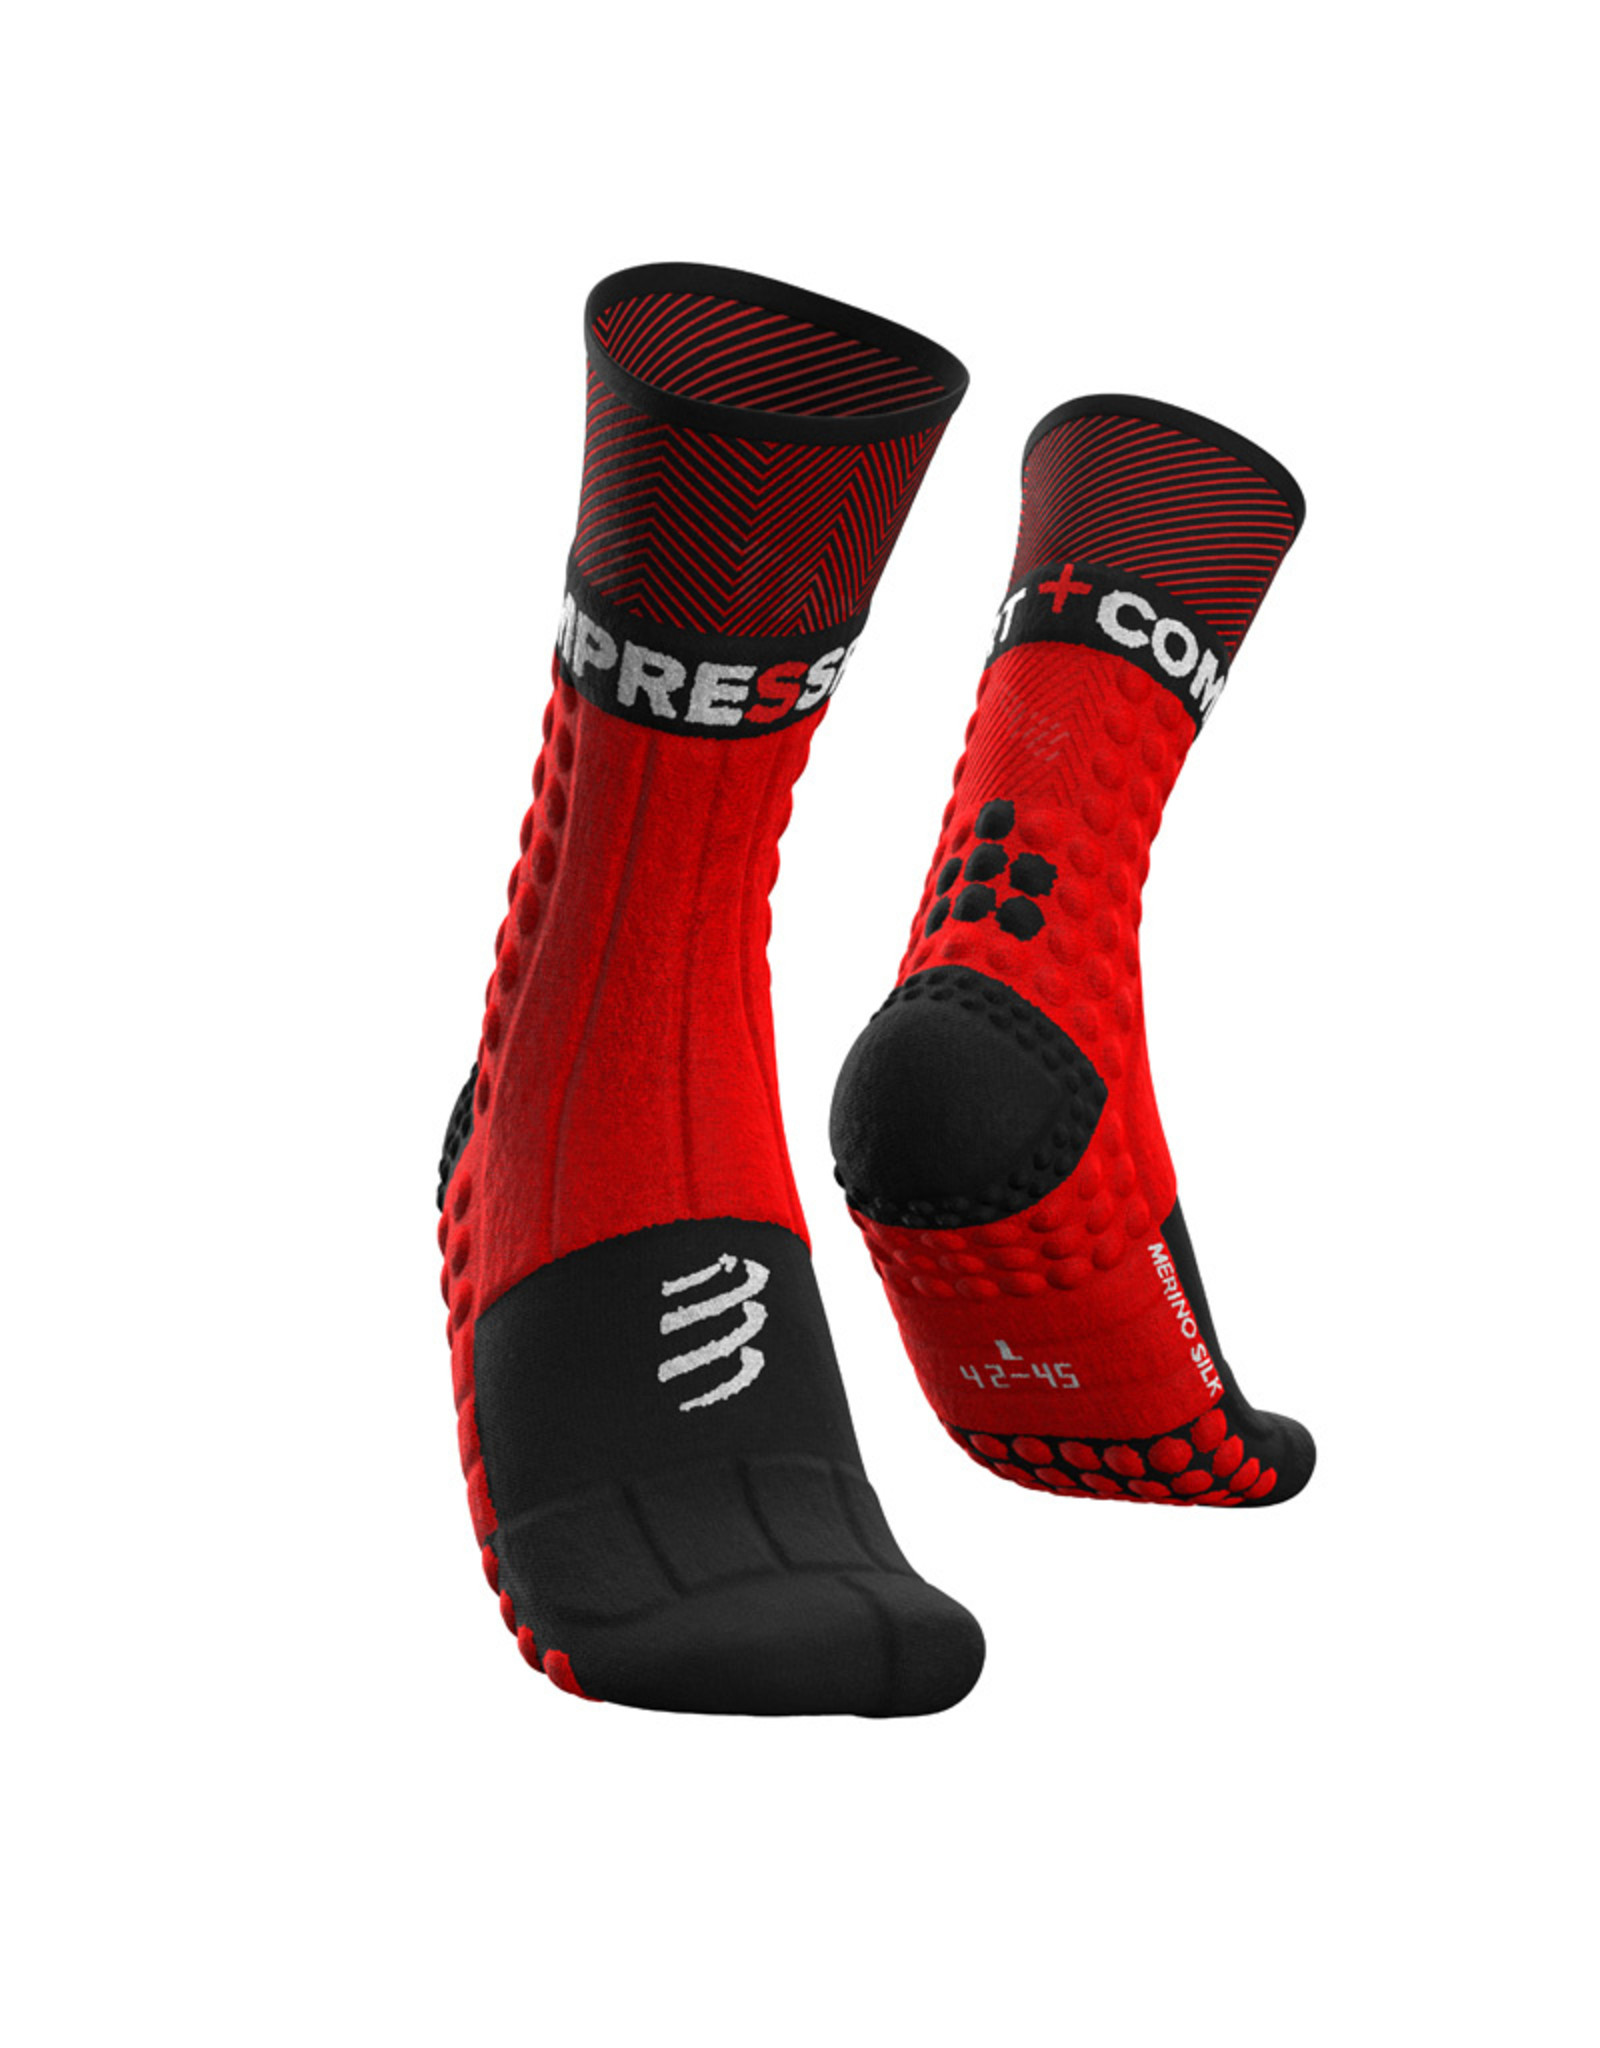 Compressport Pro Racing Socks Winter Trail Chaussettes De Running - Noir/Rouge